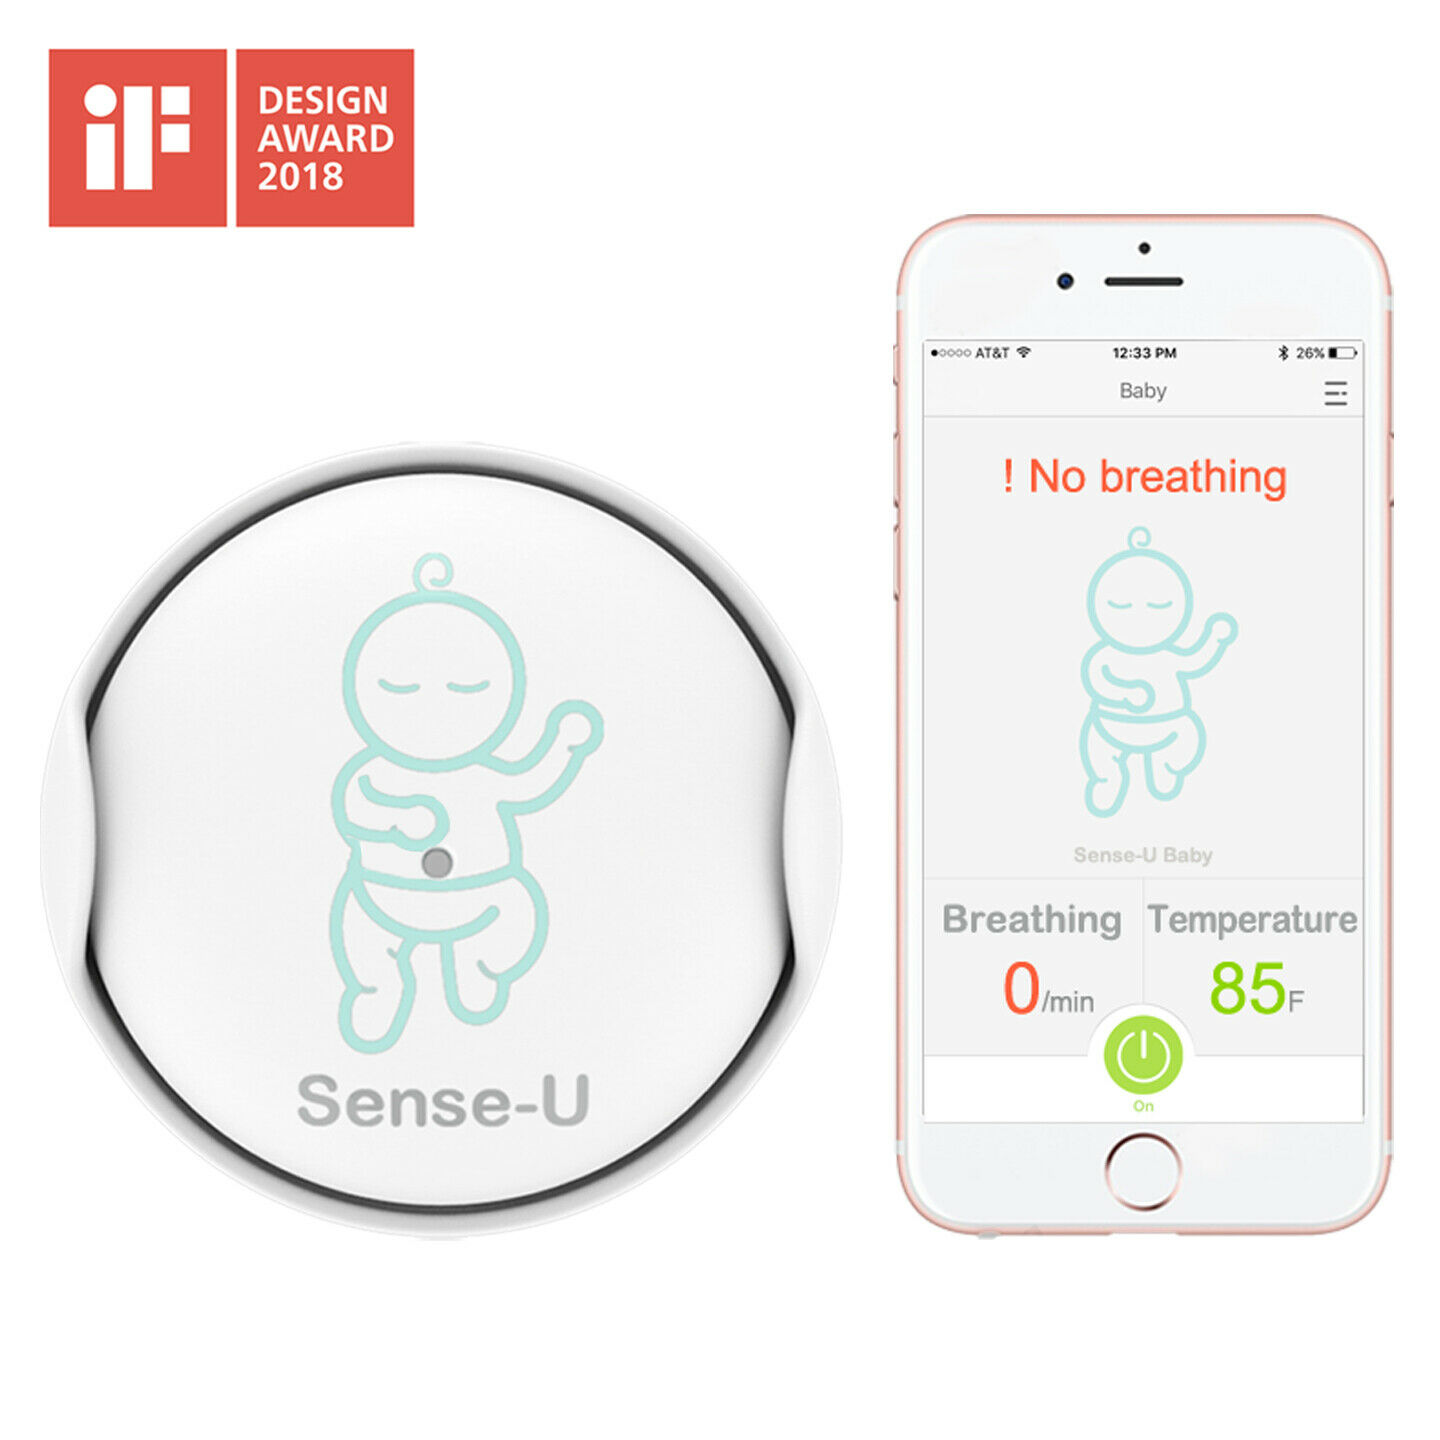 Sense-U Baby Breathing & Rollover Movement Monitor: Alerts You for No Breathing, Stomach Sleeping, Overheating and Getting Cold with Audible Alarm from Your Smartphone